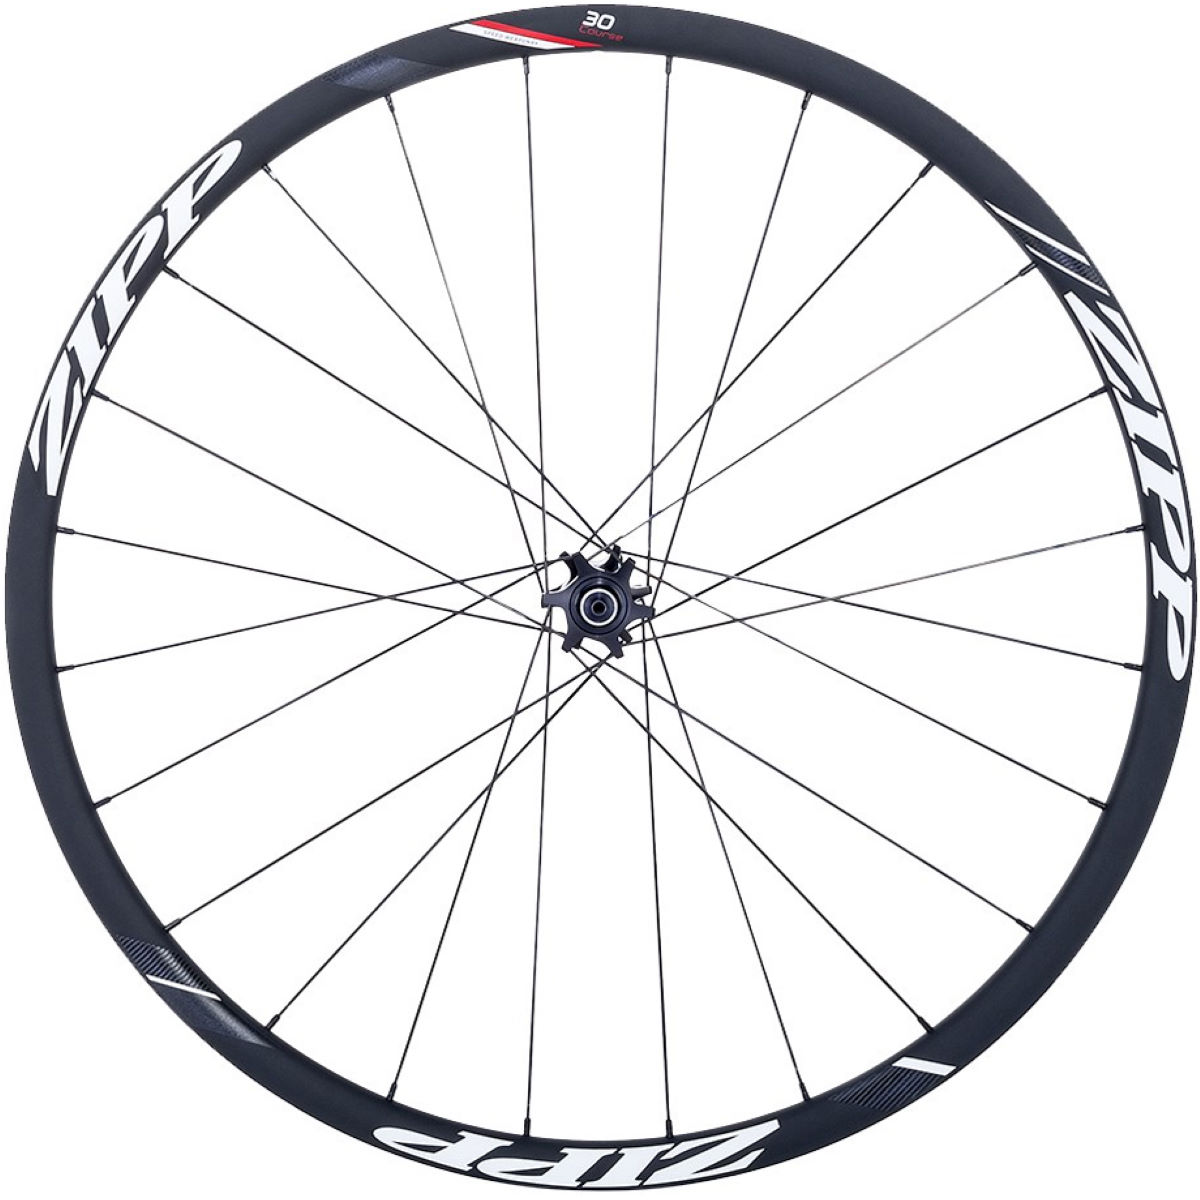 Zipp 30 Course Disc Brake Clincher Front Wheel - 700c Clincher (Disc) Noir Roues performance